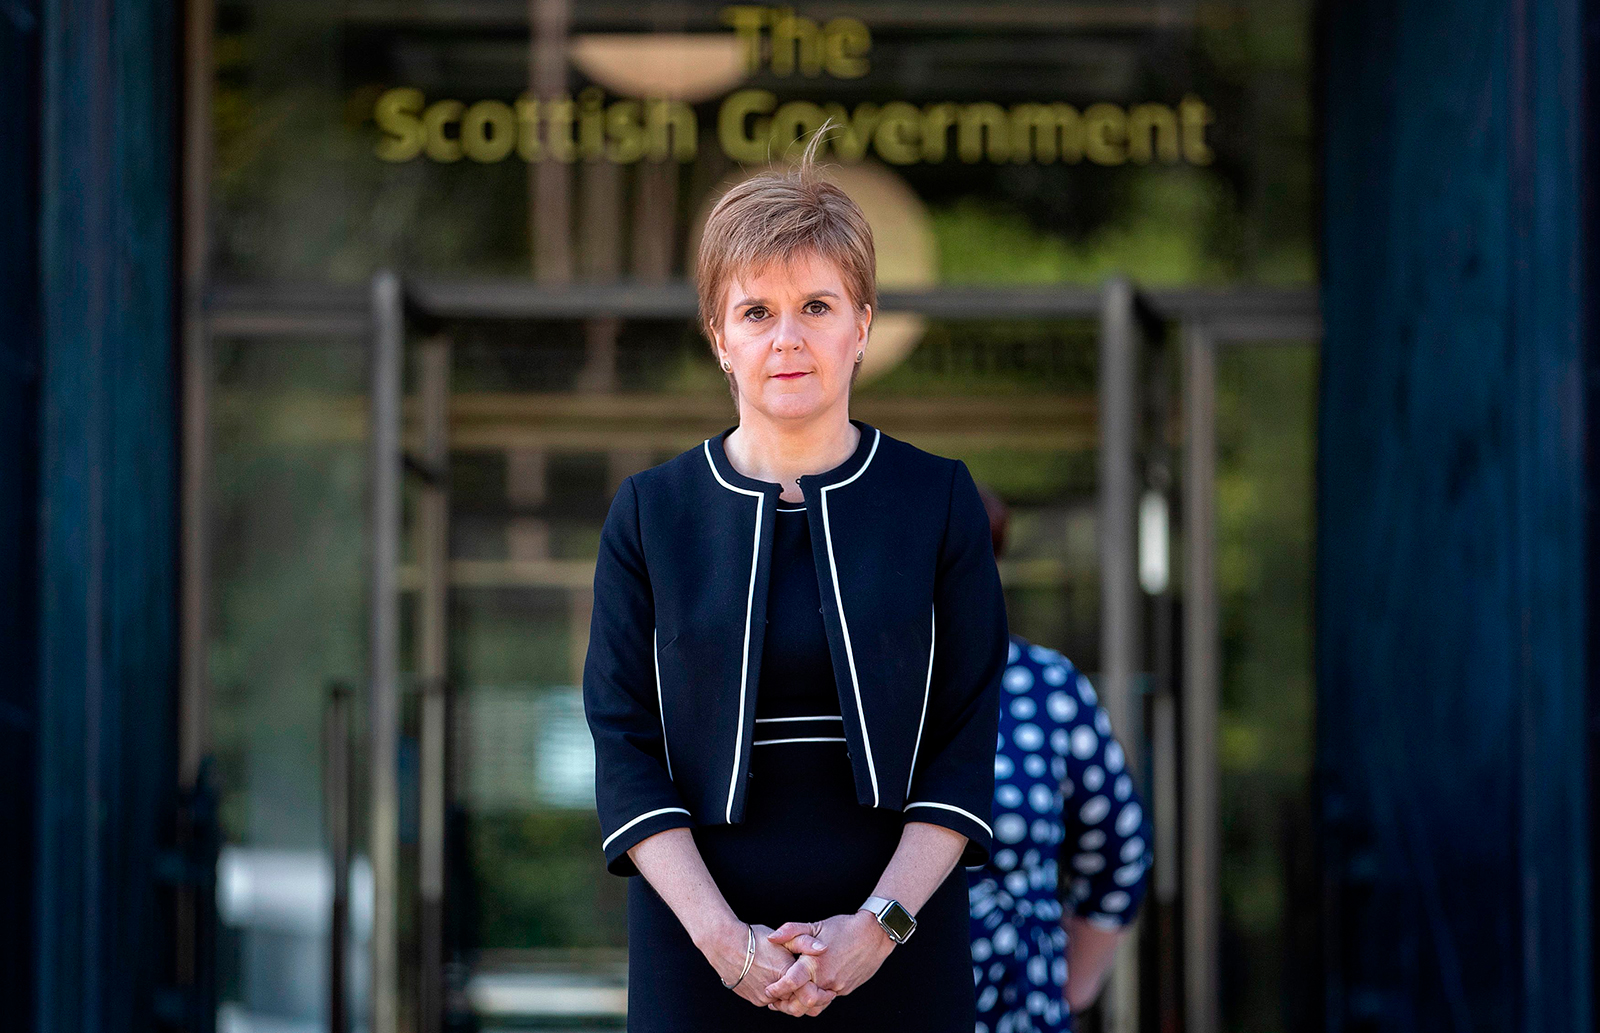 Scotland's First Minister Nicola Sturgeon pauses for a minute's silence to honour UK key workers, including Britain's NHS (National Health Service) staff, health and social care workers, who have died during the coronavirus outbreak, outside At Andrew's House in Edinburgh on Tuesday, April 28.